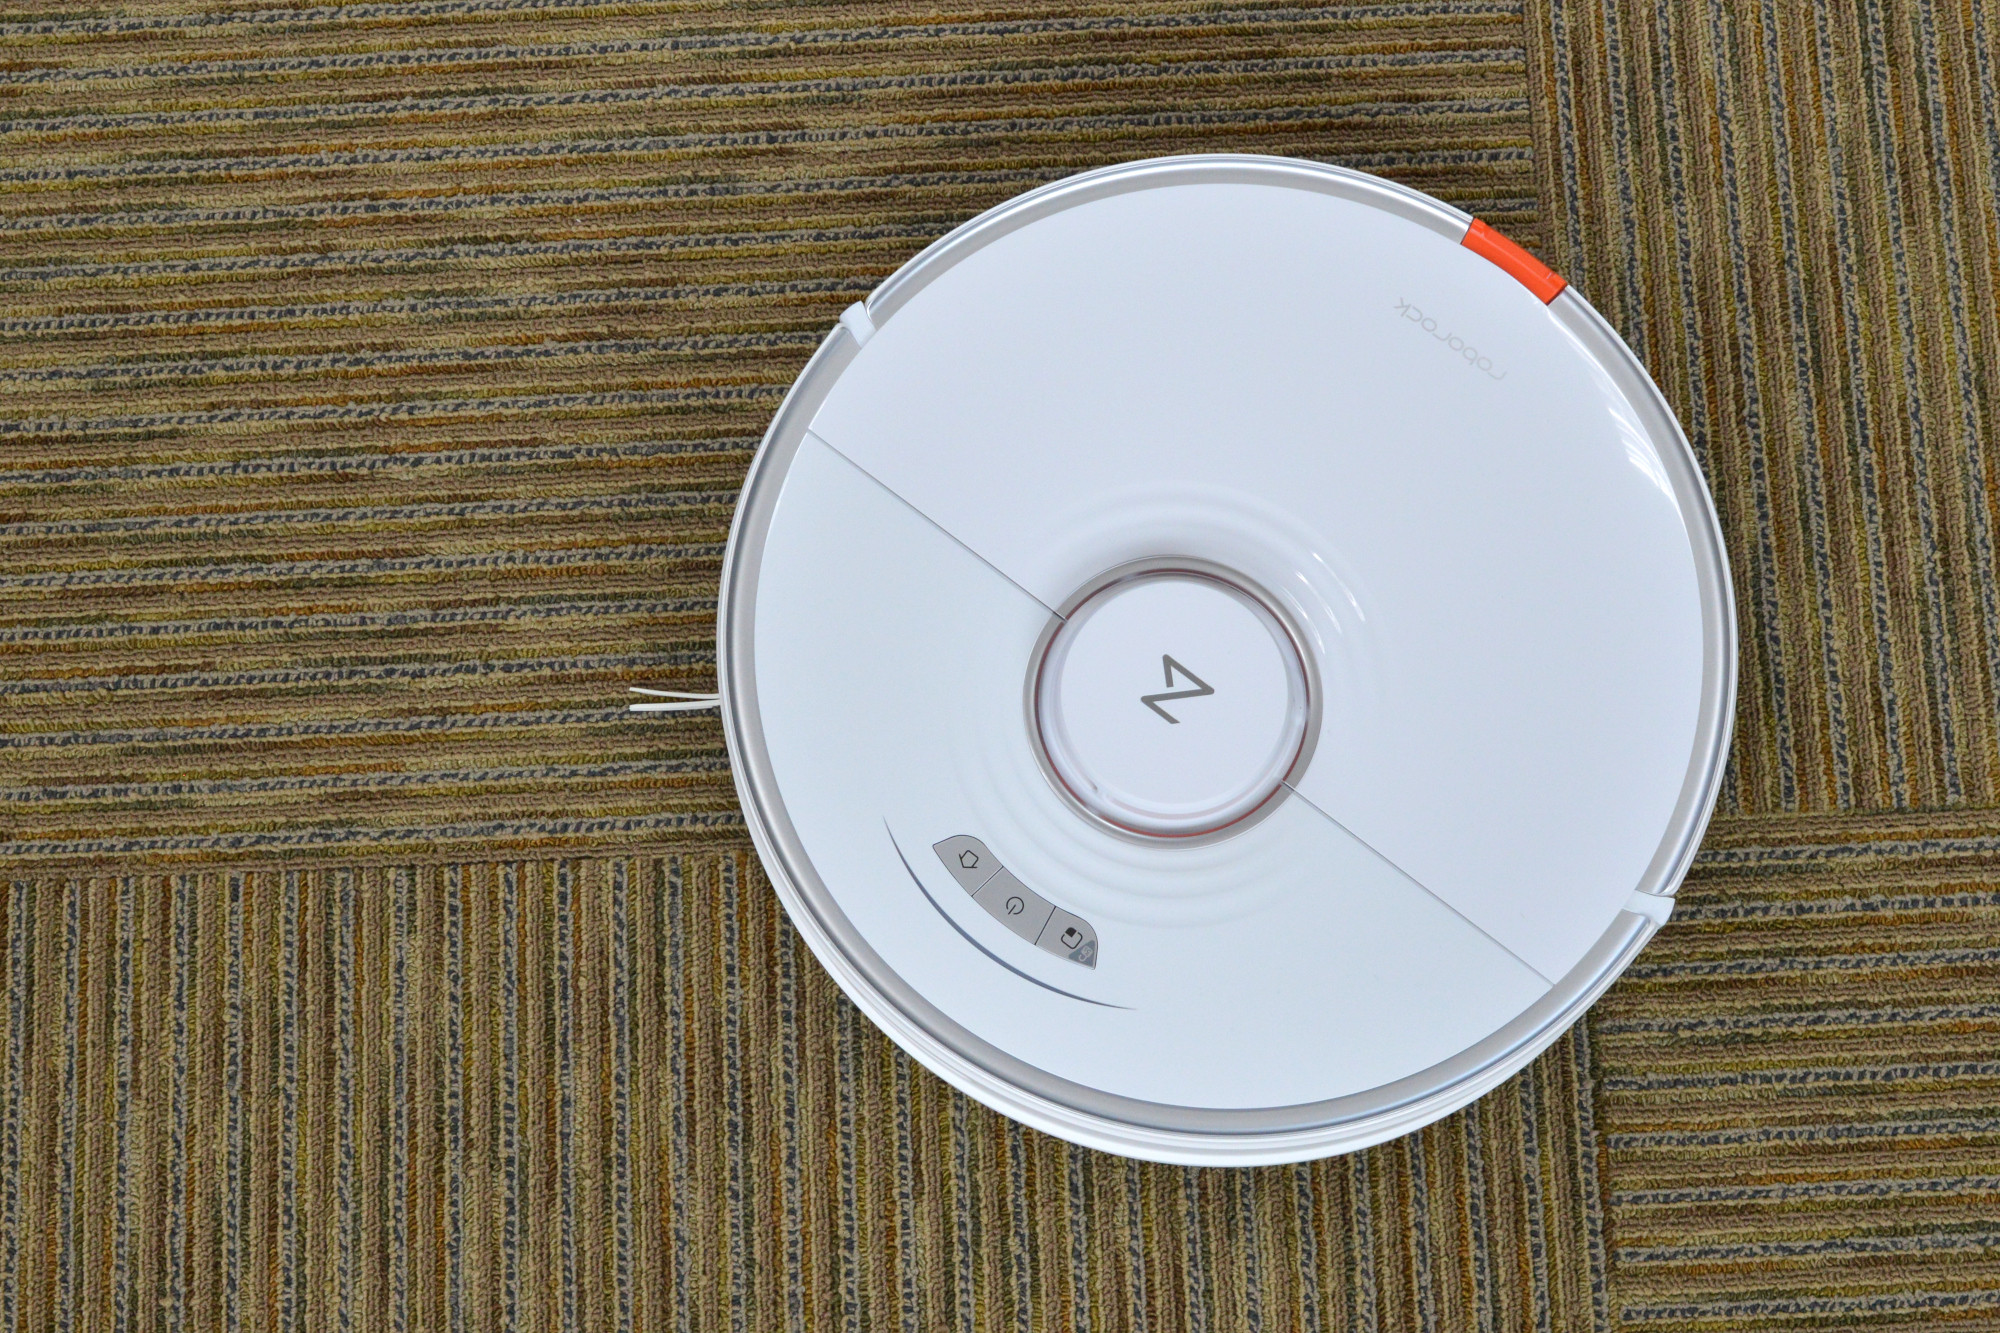 Roborock S7+ robotic vacuum review: Everything you want, at a price